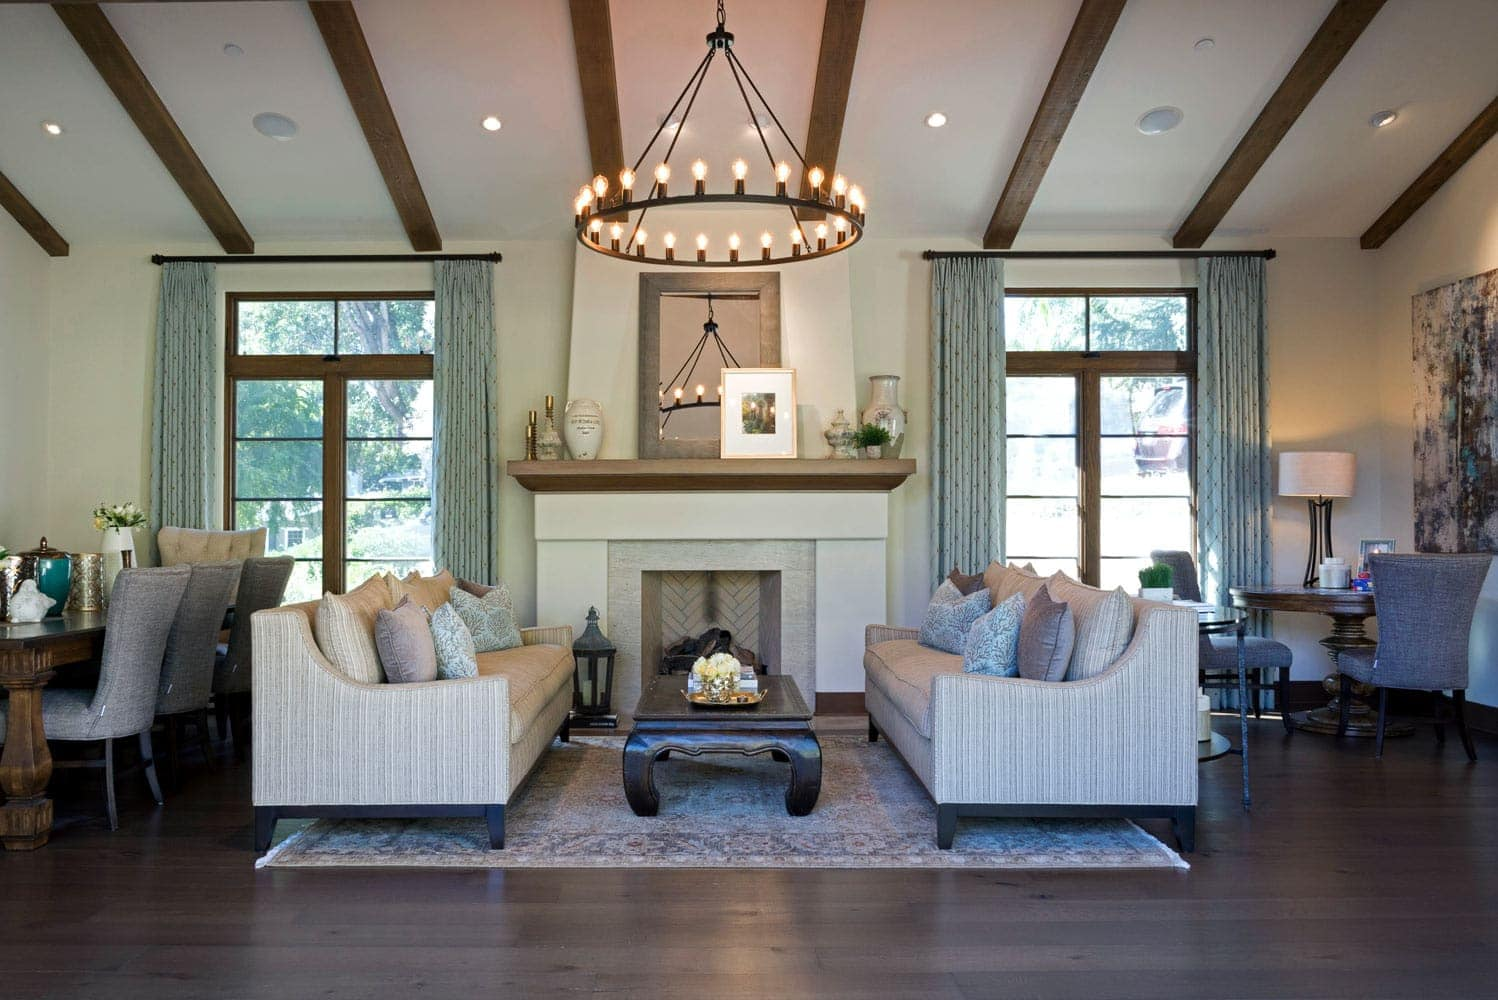 Living room fireplace design of a La Cañada Blvd house